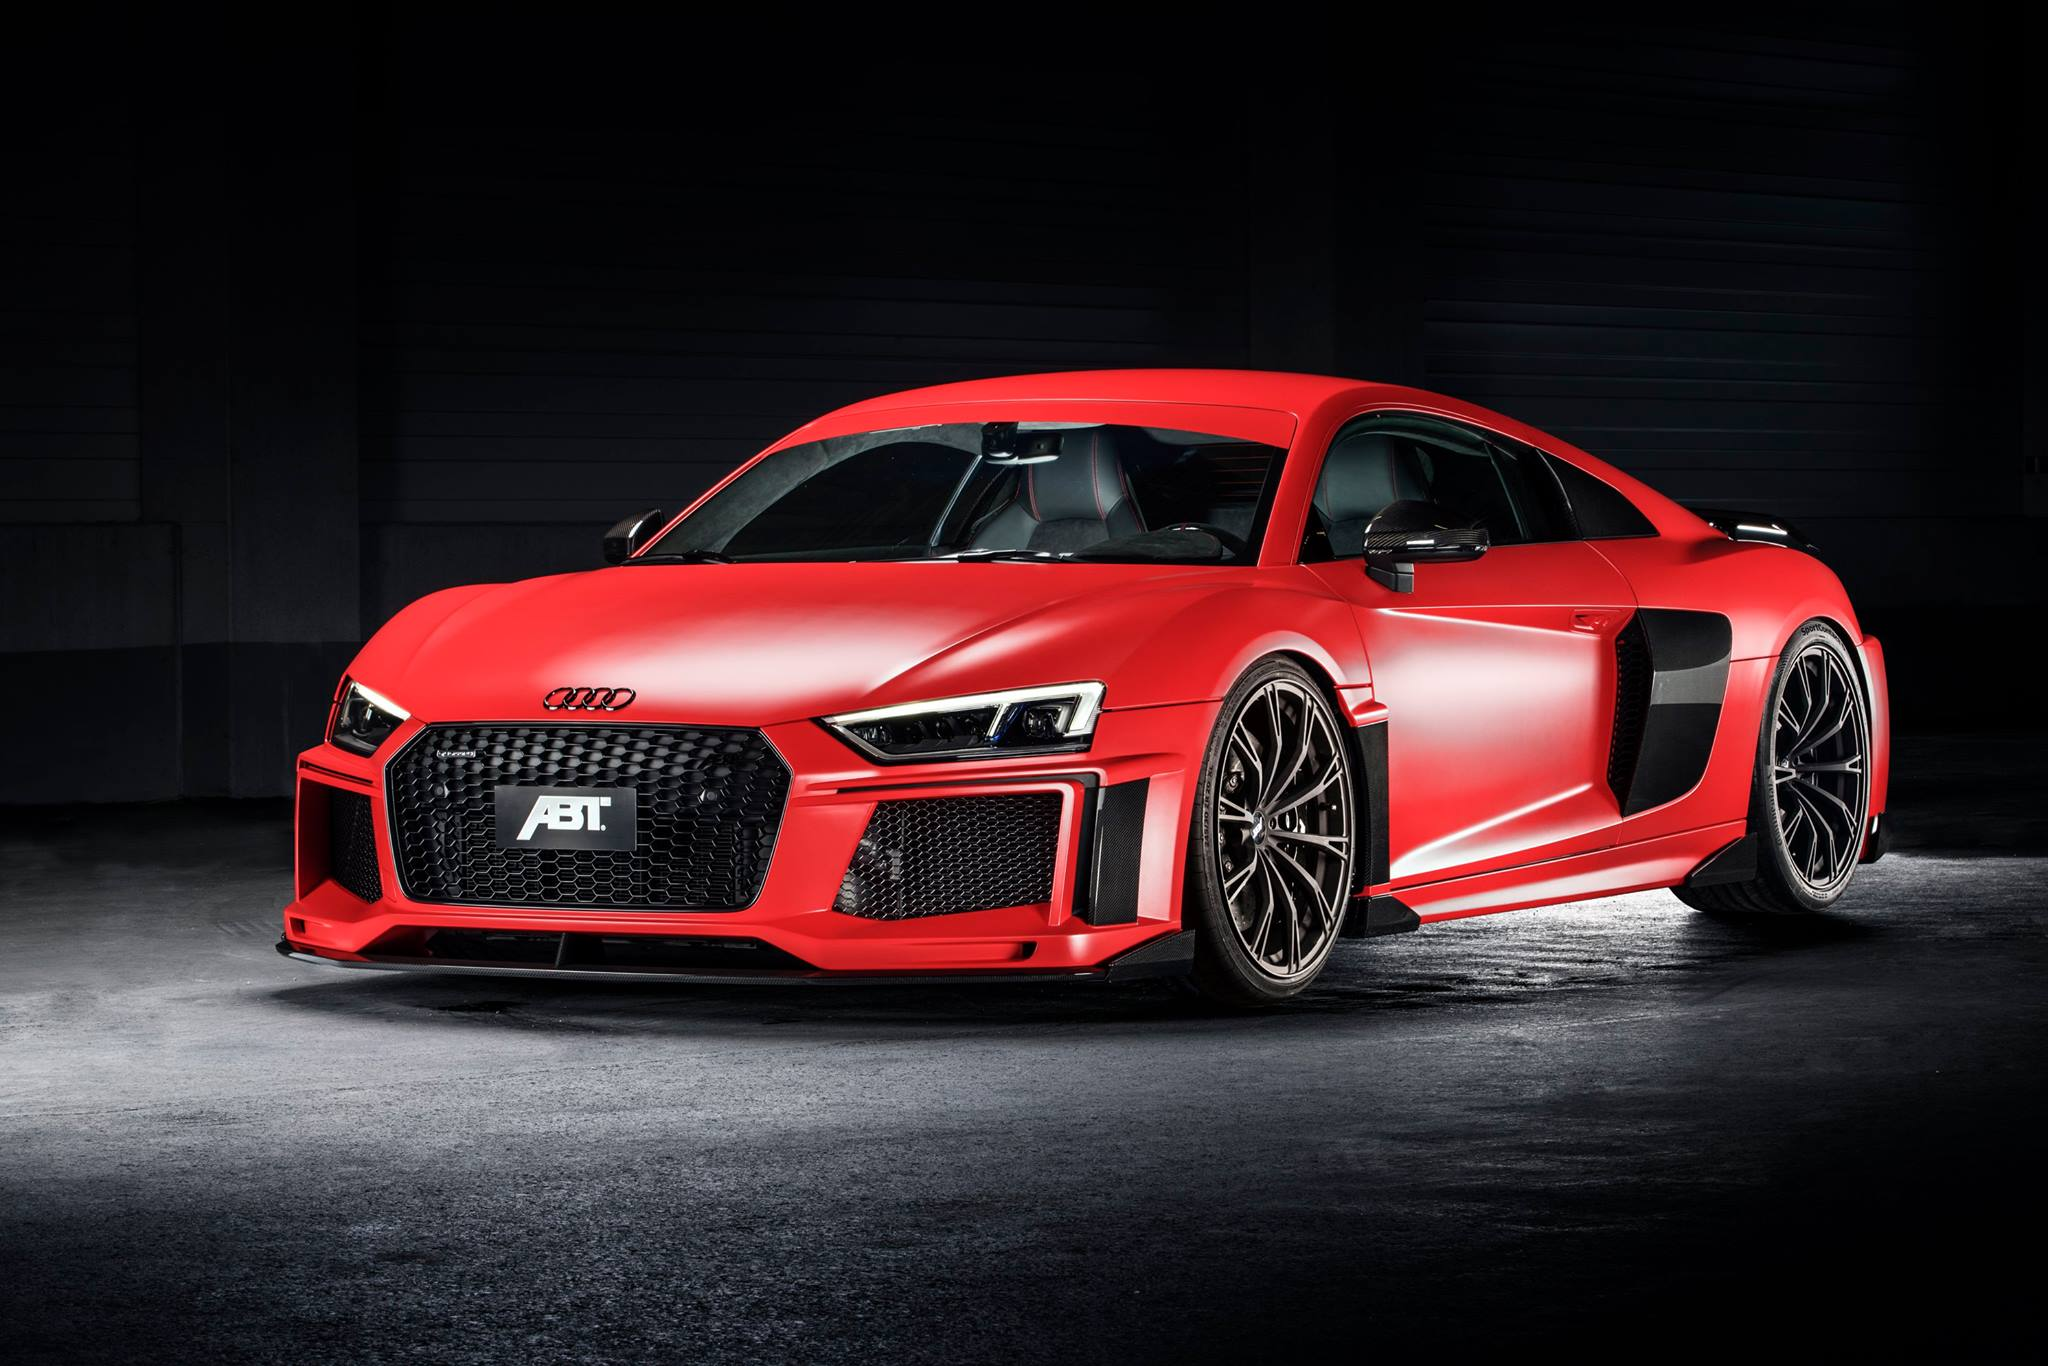 Audi ABT Red and Carbon бесплатно